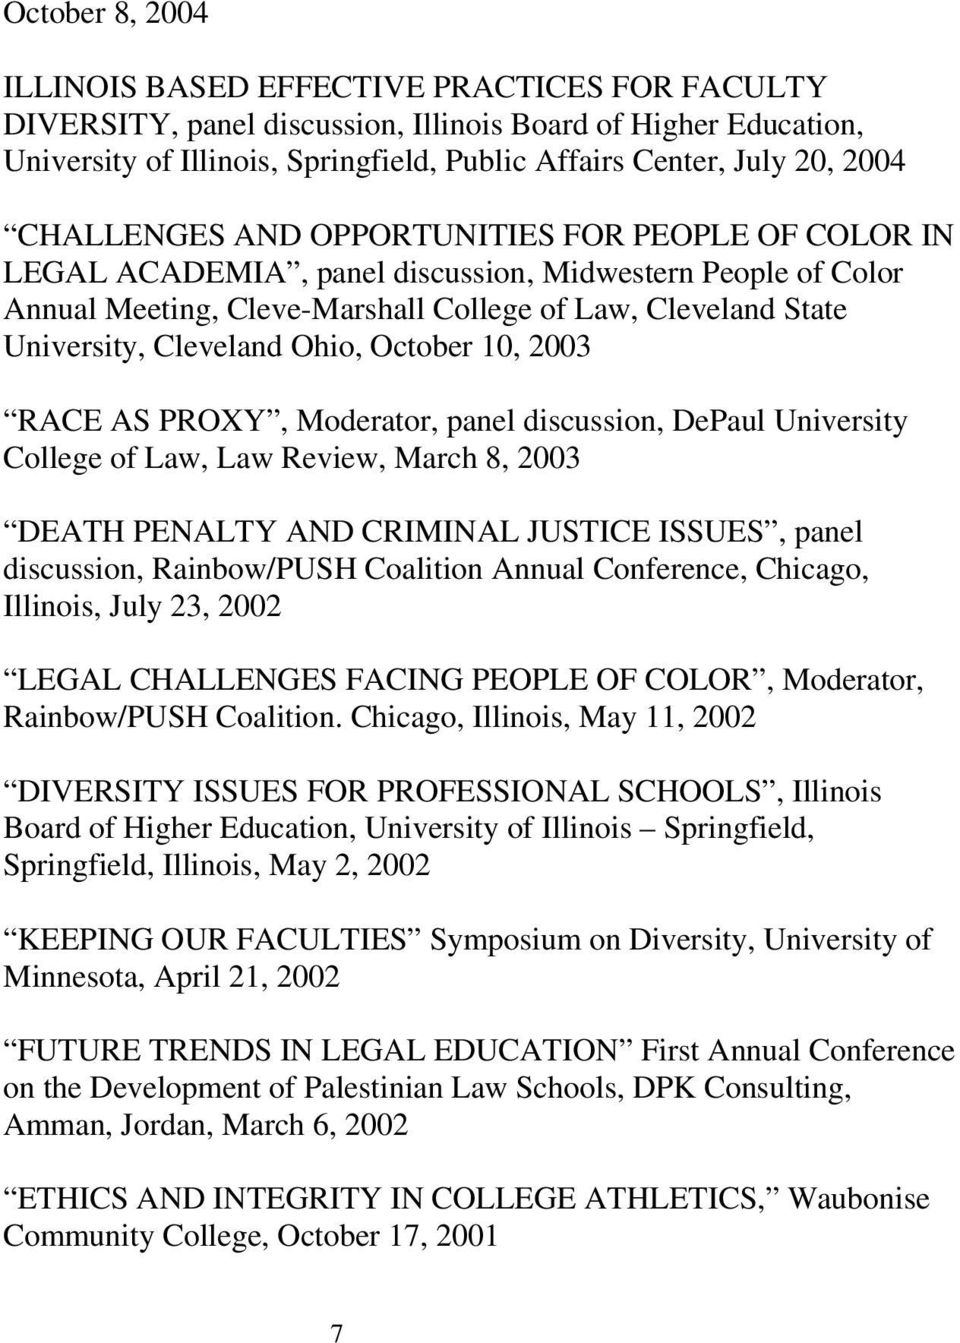 Cleveland Ohio, October 10, 2003 RACE AS PROXY, Moderator, panel discussion, DePaul University College of Law, Law Review, March 8, 2003 DEATH PENALTY AND CRIMINAL JUSTICE ISSUES, panel discussion,